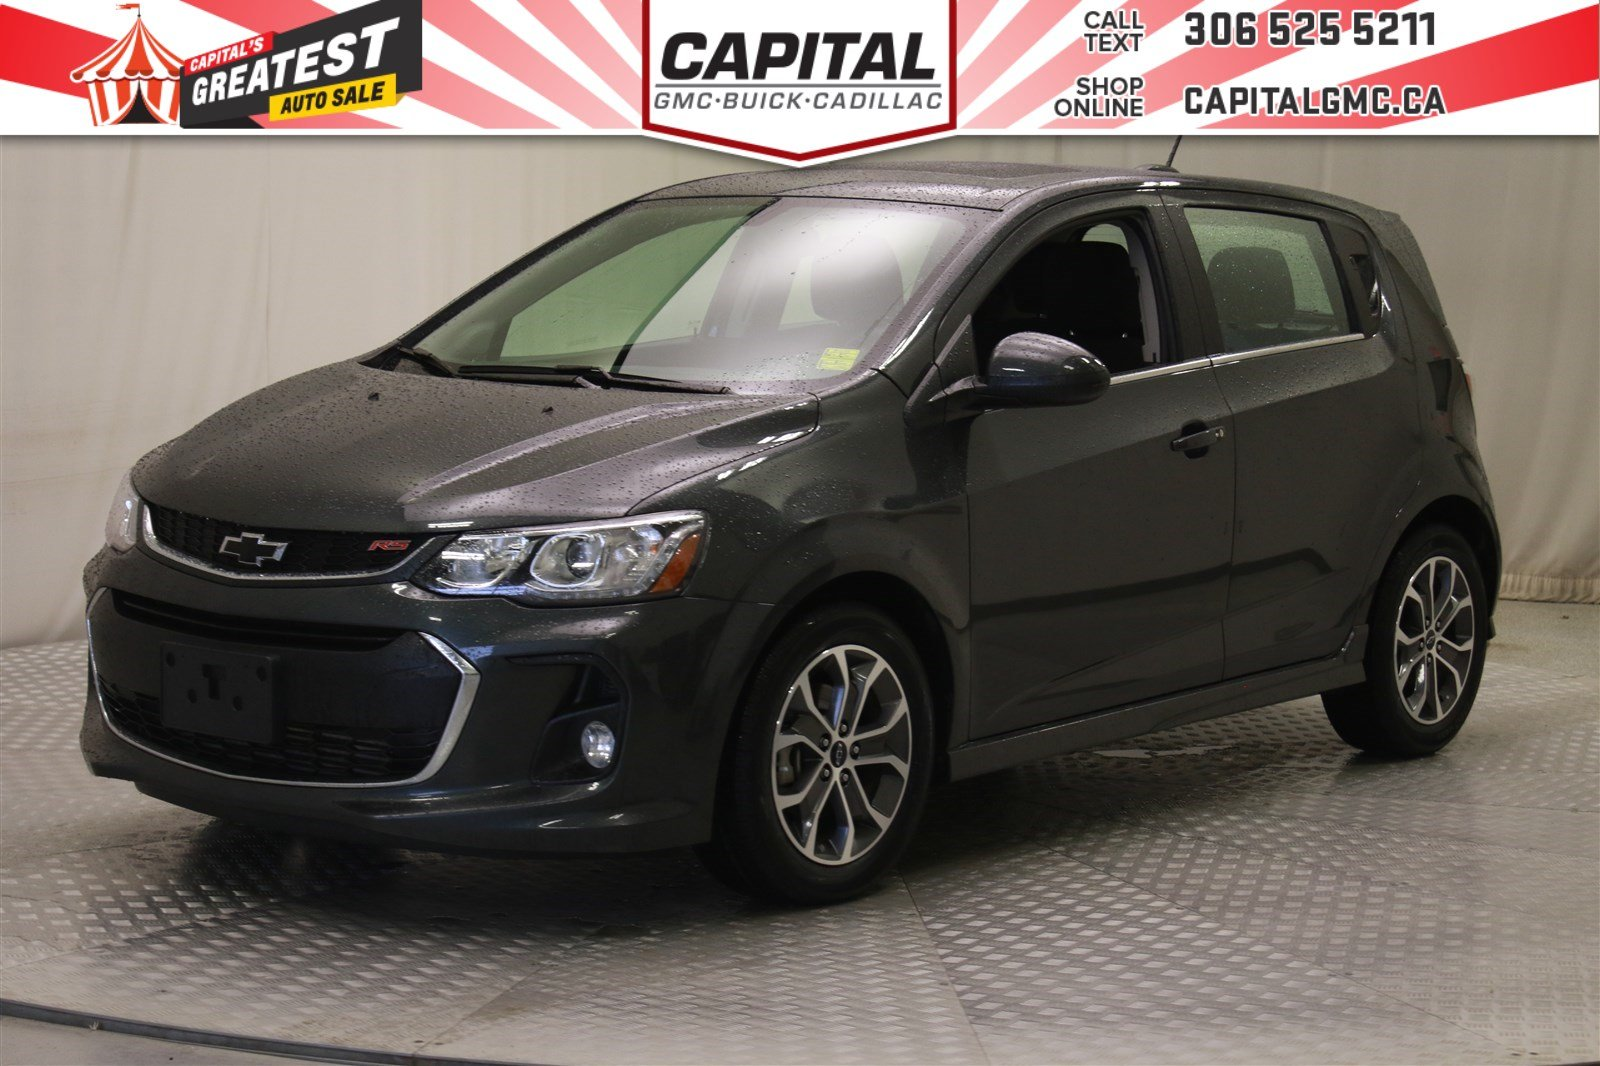 Chevrolet Sonic Repair Manual: Audio Disc Player and USB Receptacle Replacement